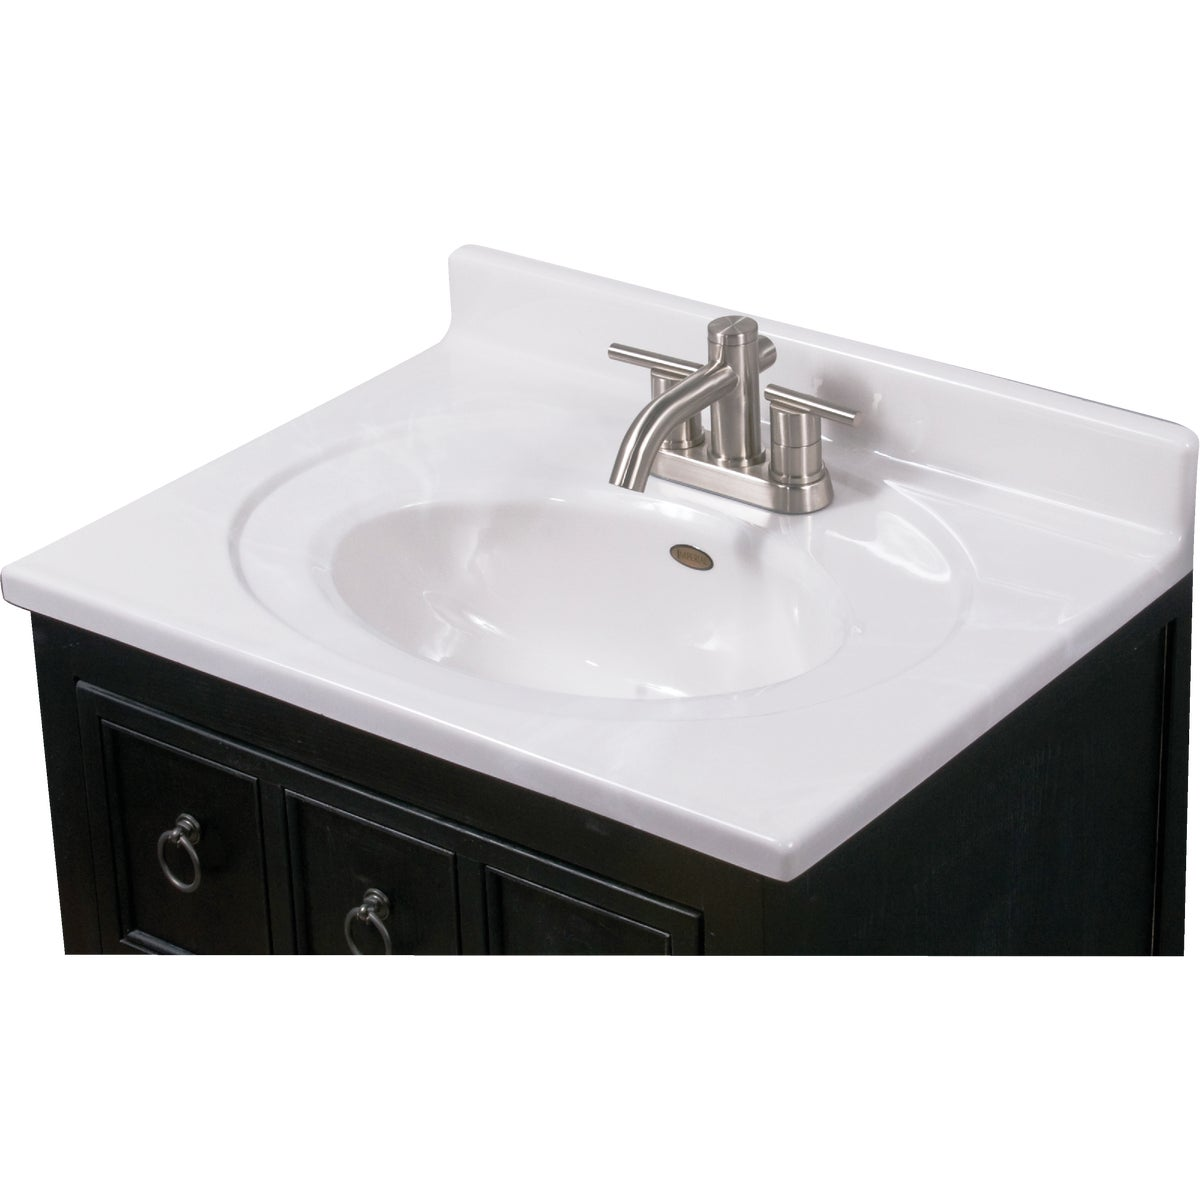 25X19 WHT/WHT VANITY TOP - VS2519W by Imperial Marble Corp